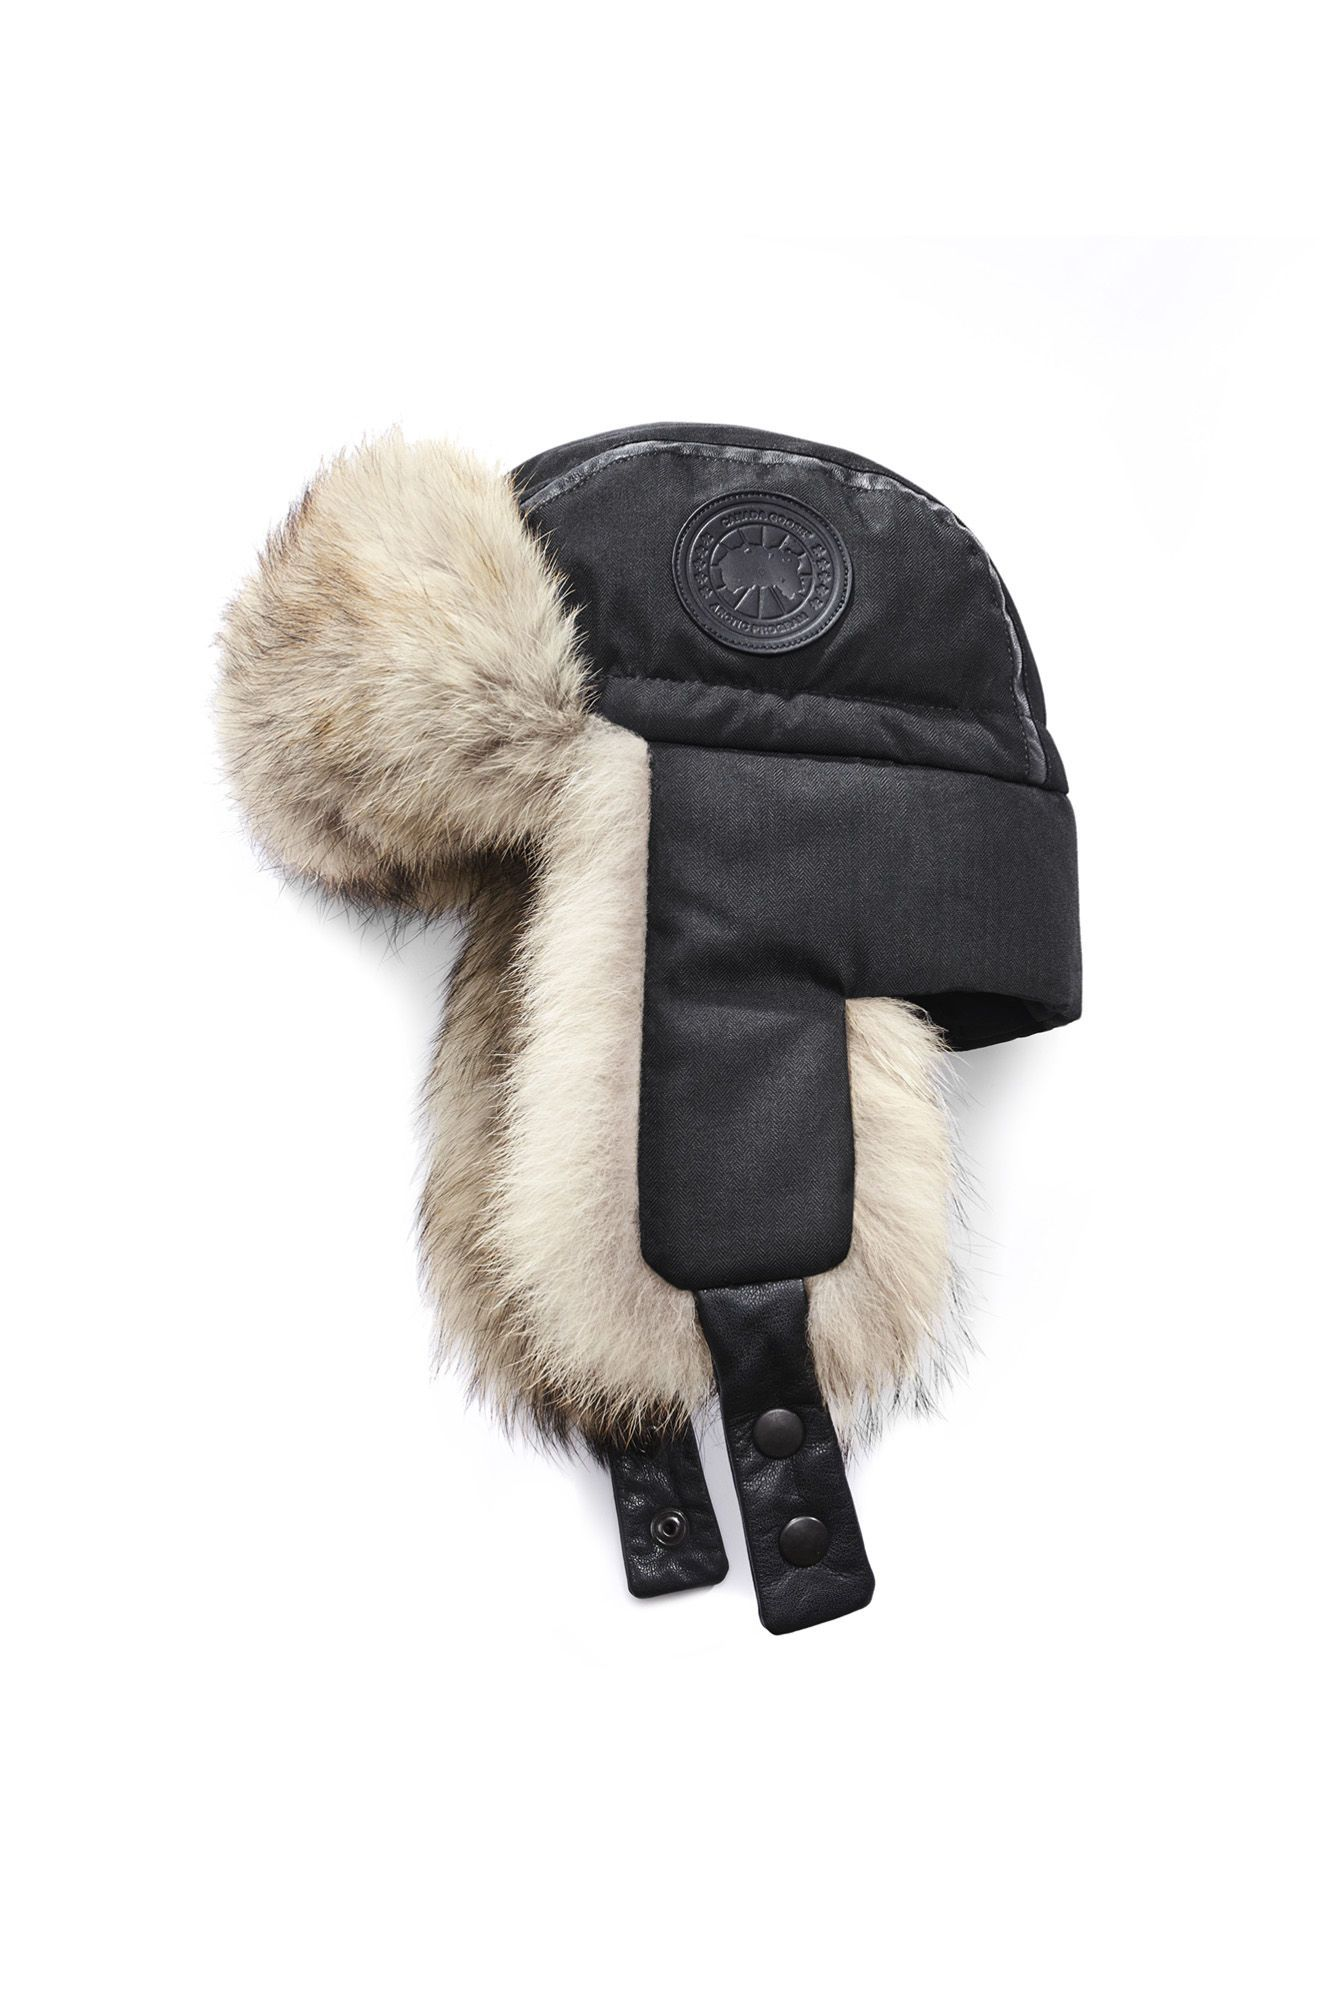 53ceff711aa2de Aviator Hat Black Label | Canada Goose | accessory rites | Hats ...